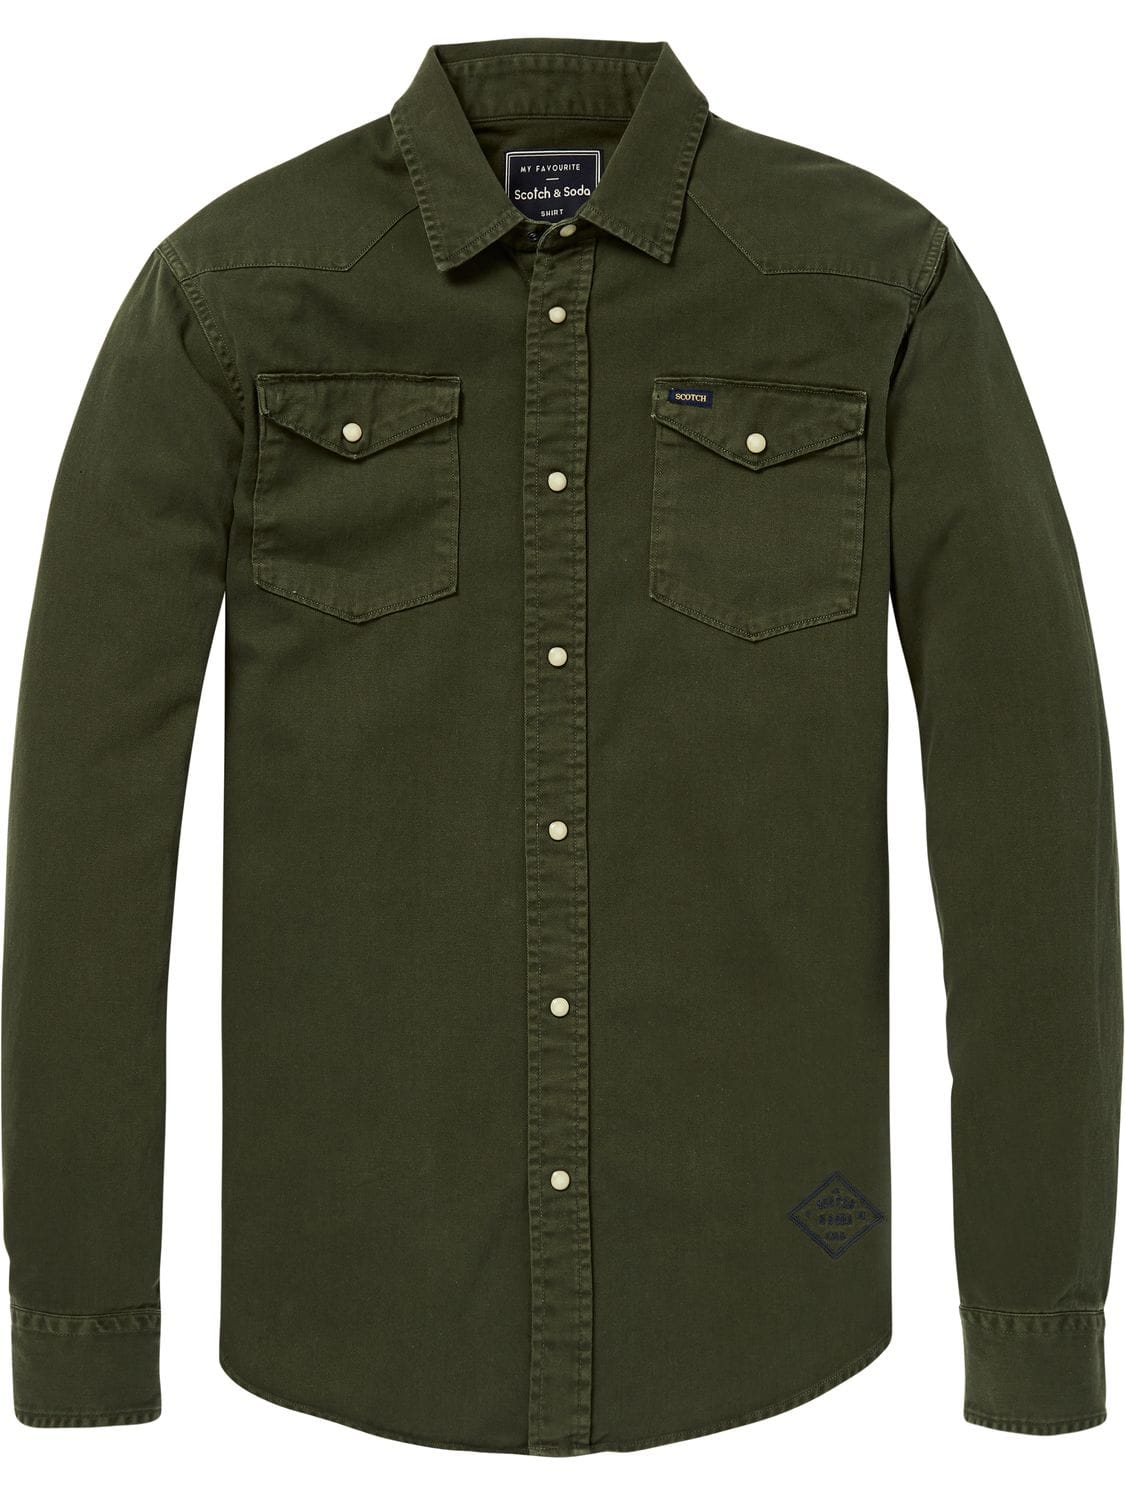 Heren Overhemd groen Scotch & Soda 145384 - 0548